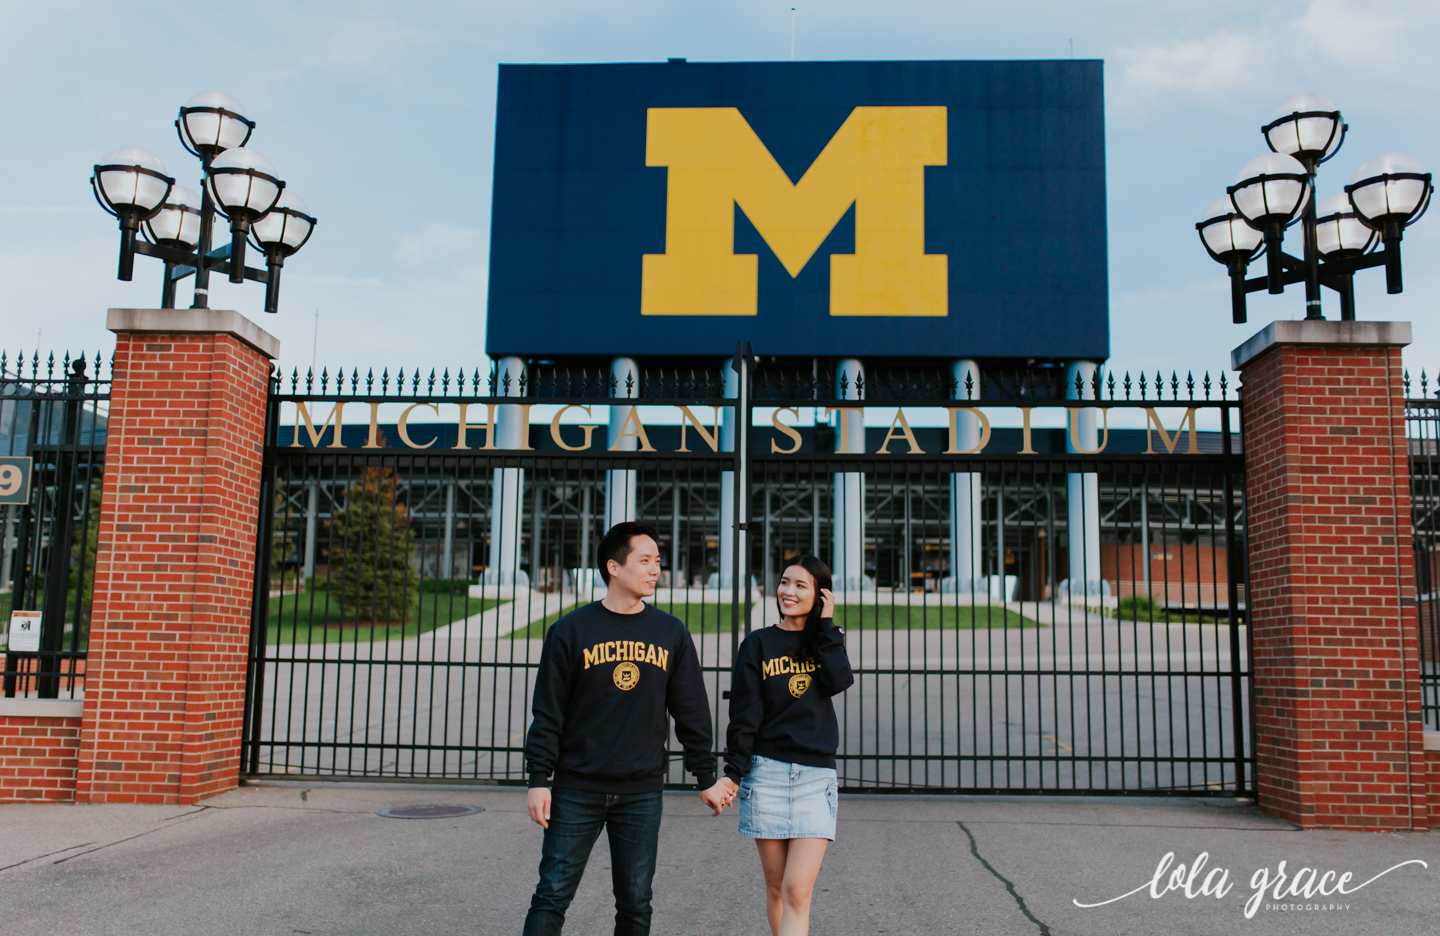 ann-arbor-engagement-law-quad-diag-uofm-19.jpg